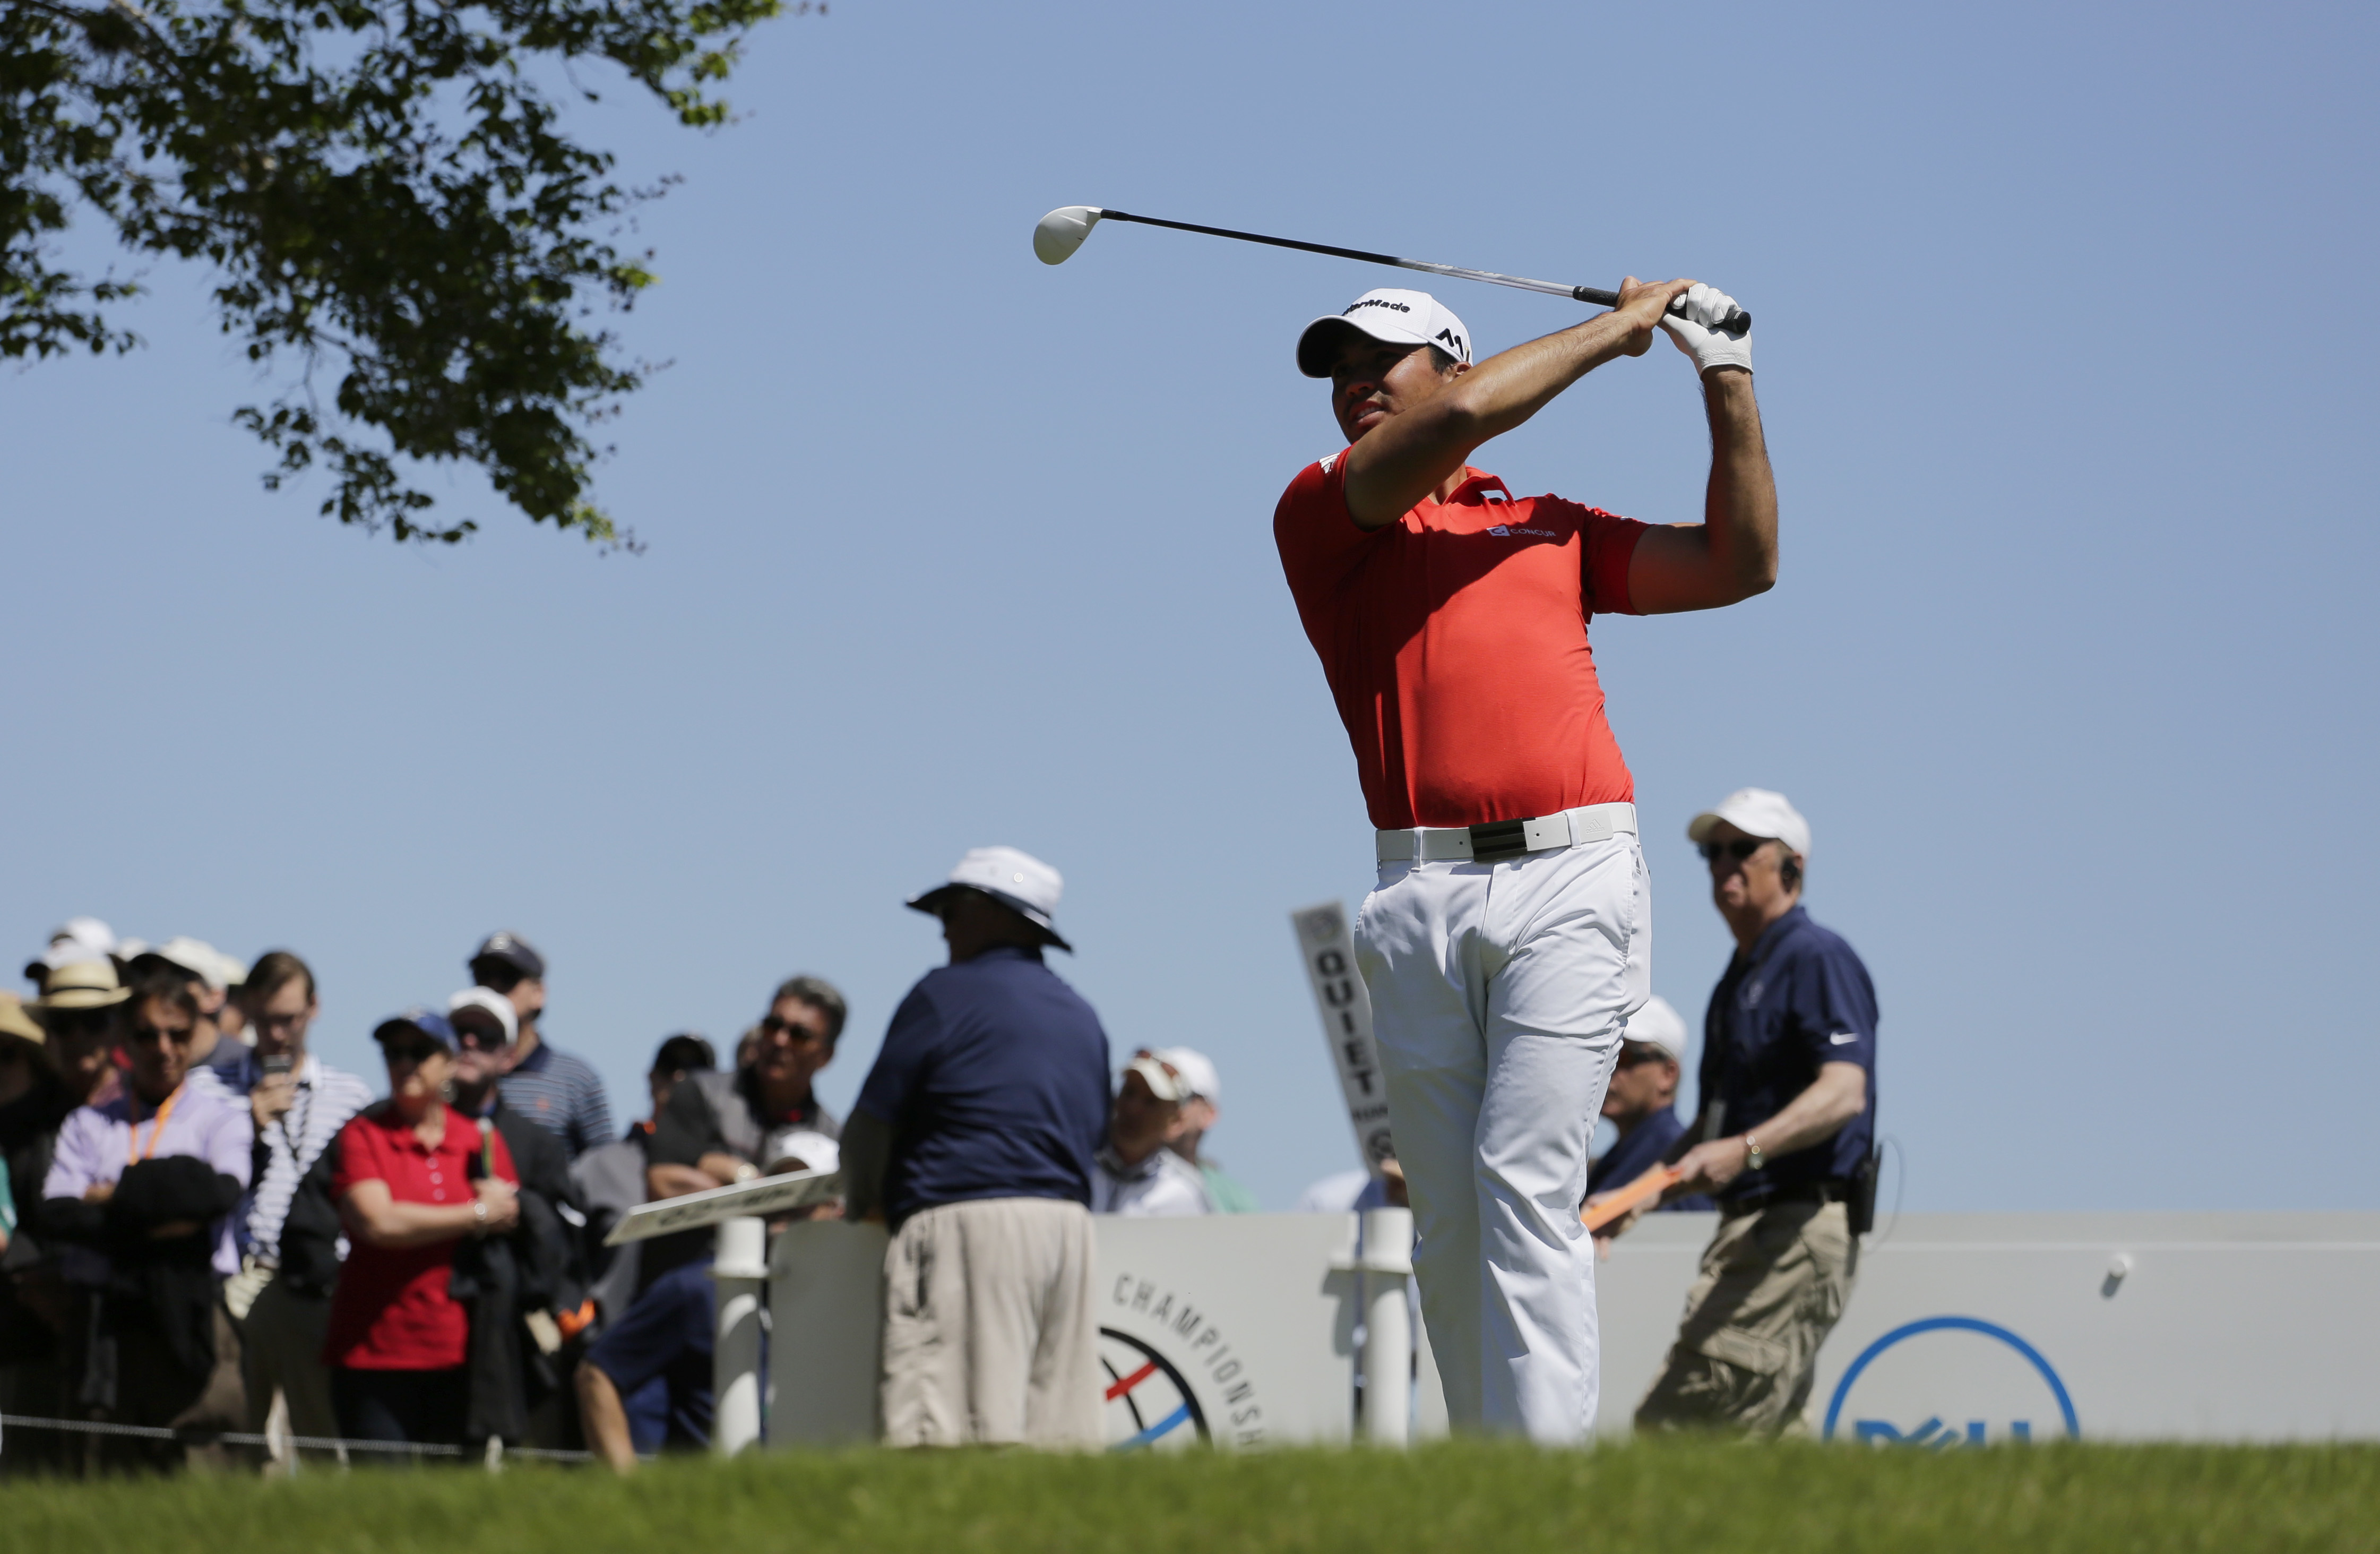 Jason Day, of Australia, watches his tee shot on the third hole during round-robin play against Paul Casey at the Dell Match Play Championship golf tournament at Austin County Club, Friday, March 25, 2016, in Austin, Texas. (AP Photo/Eric Gay)